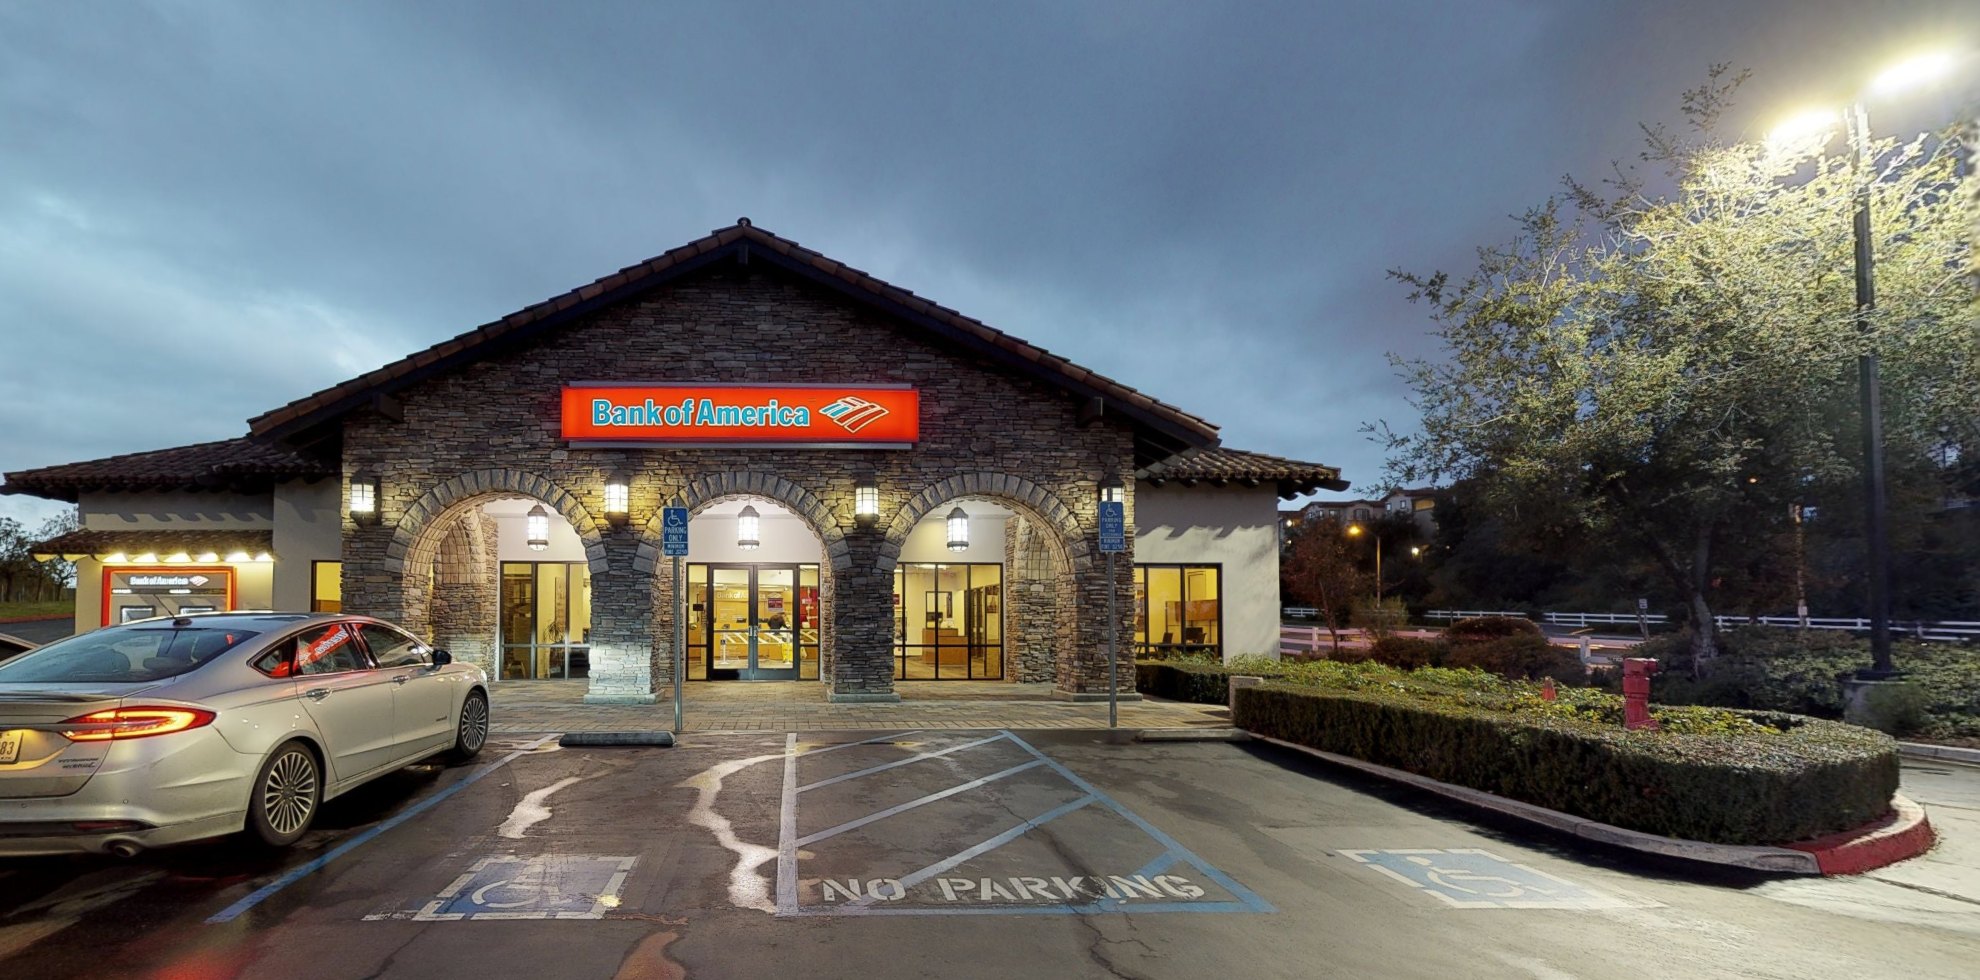 Bank of America financial center with drive-thru ATM | 26960 The Old Rd, Stevenson Ranch, CA 91381